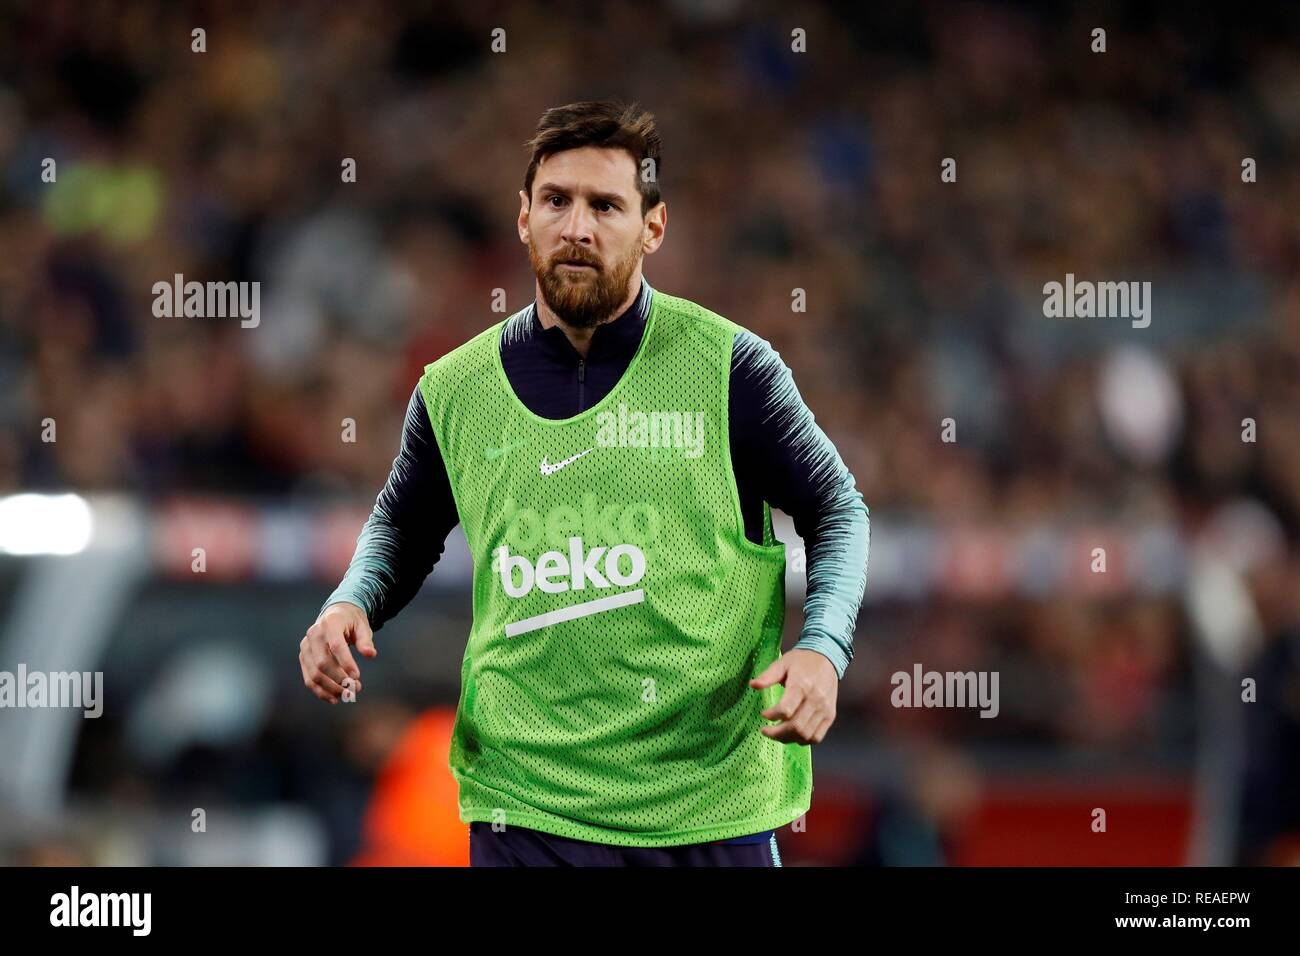 Barcelona, Spain. 20th Jan, 2019. FC Barcelona's Argentinian striker Lionel Messi during the Spanish first division LaLiga Santander 20th round march between FC Barcelona and Leganes, at the Camp Nou stadium, in Barcelona, Catalonia, Spain, 20 January 2019. Credit: Toni Albir/EFE/Alamy Live News Stock Photo